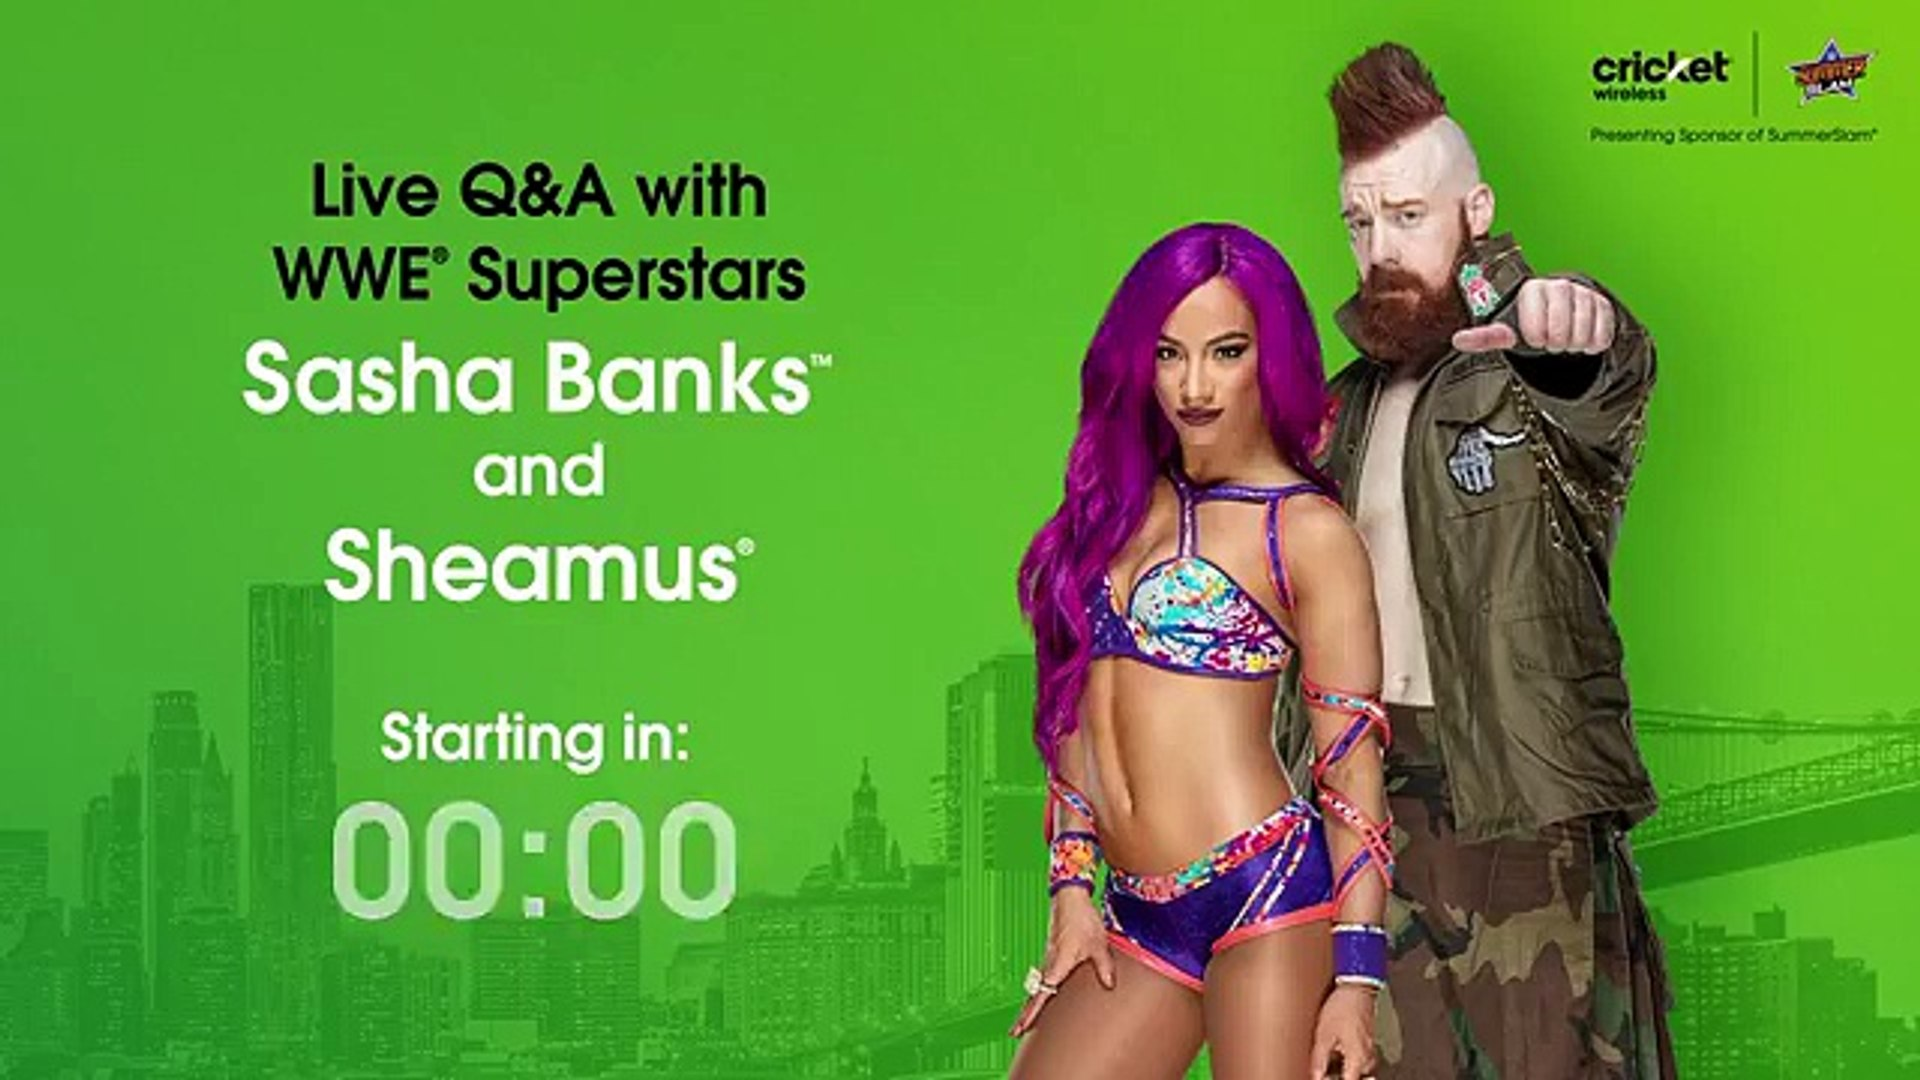 WWE fans—we're hosting a LIVE Q&A with WWE Superstars Sasha Banks and Sheamus in Brooklyn during